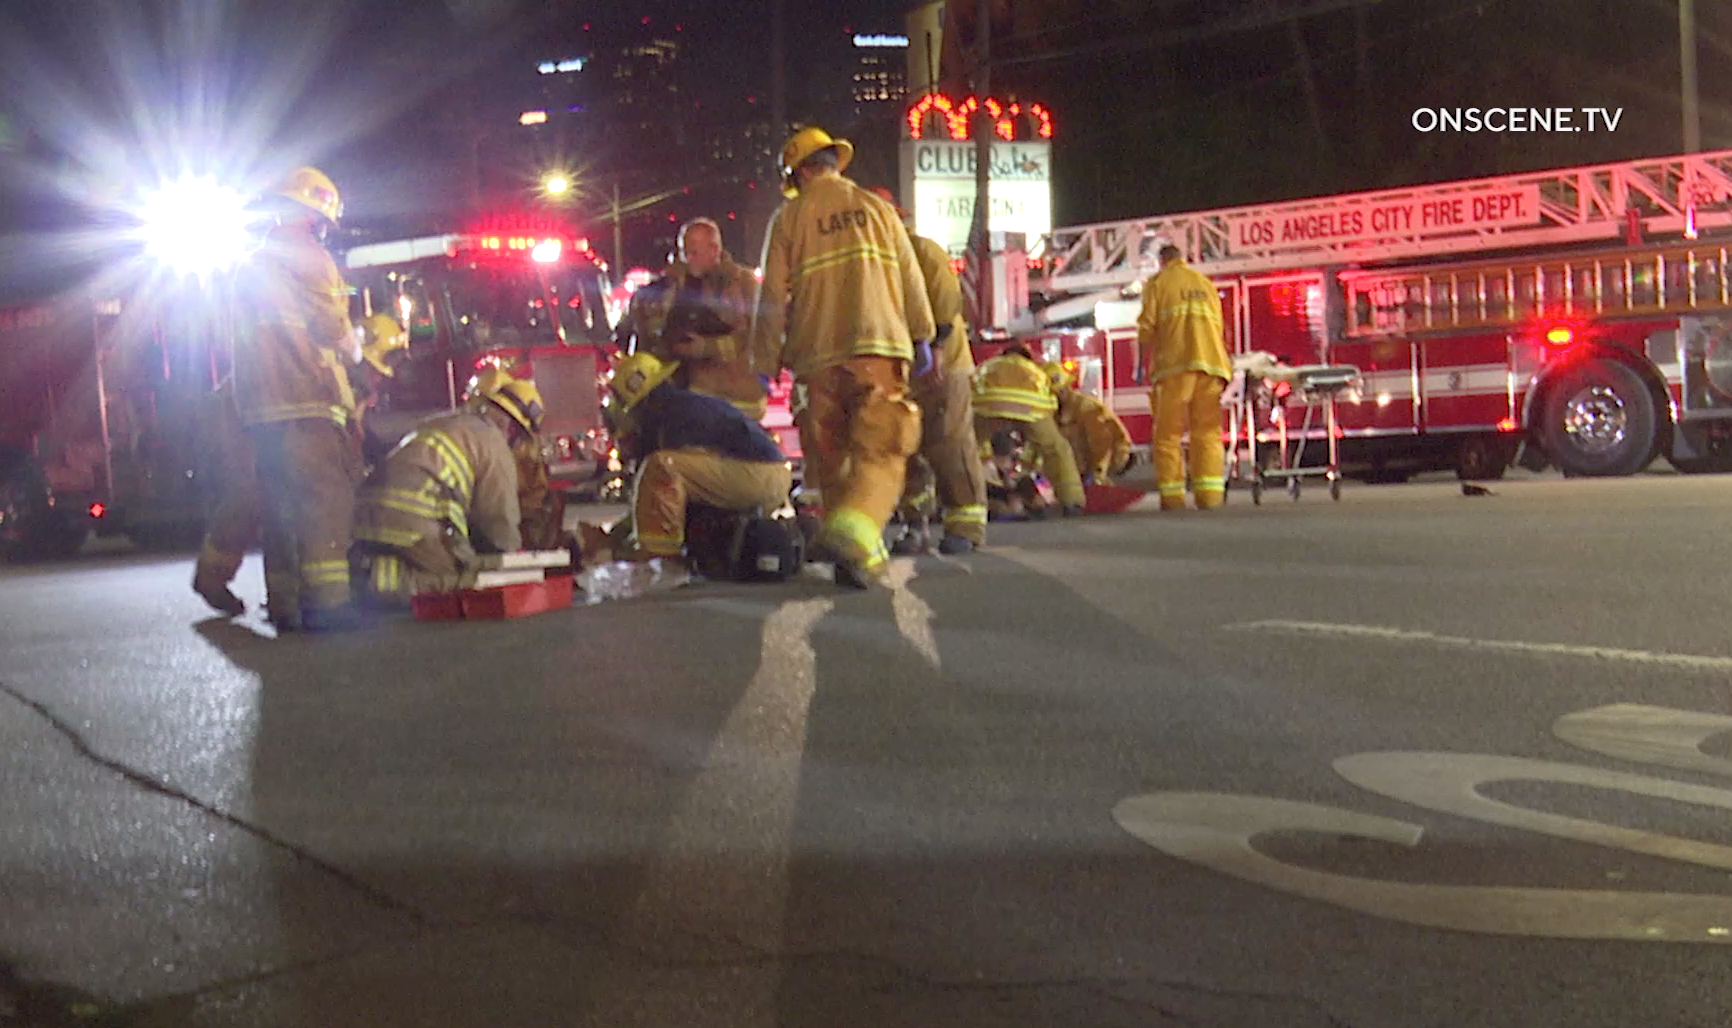 Los Angeles Fire Department crews attend to a couple injured in a hit-and-run crash on Sunset Boulevard in Echo Park on Feb. 24, 2020. (Credit: ONSCENE.TV)